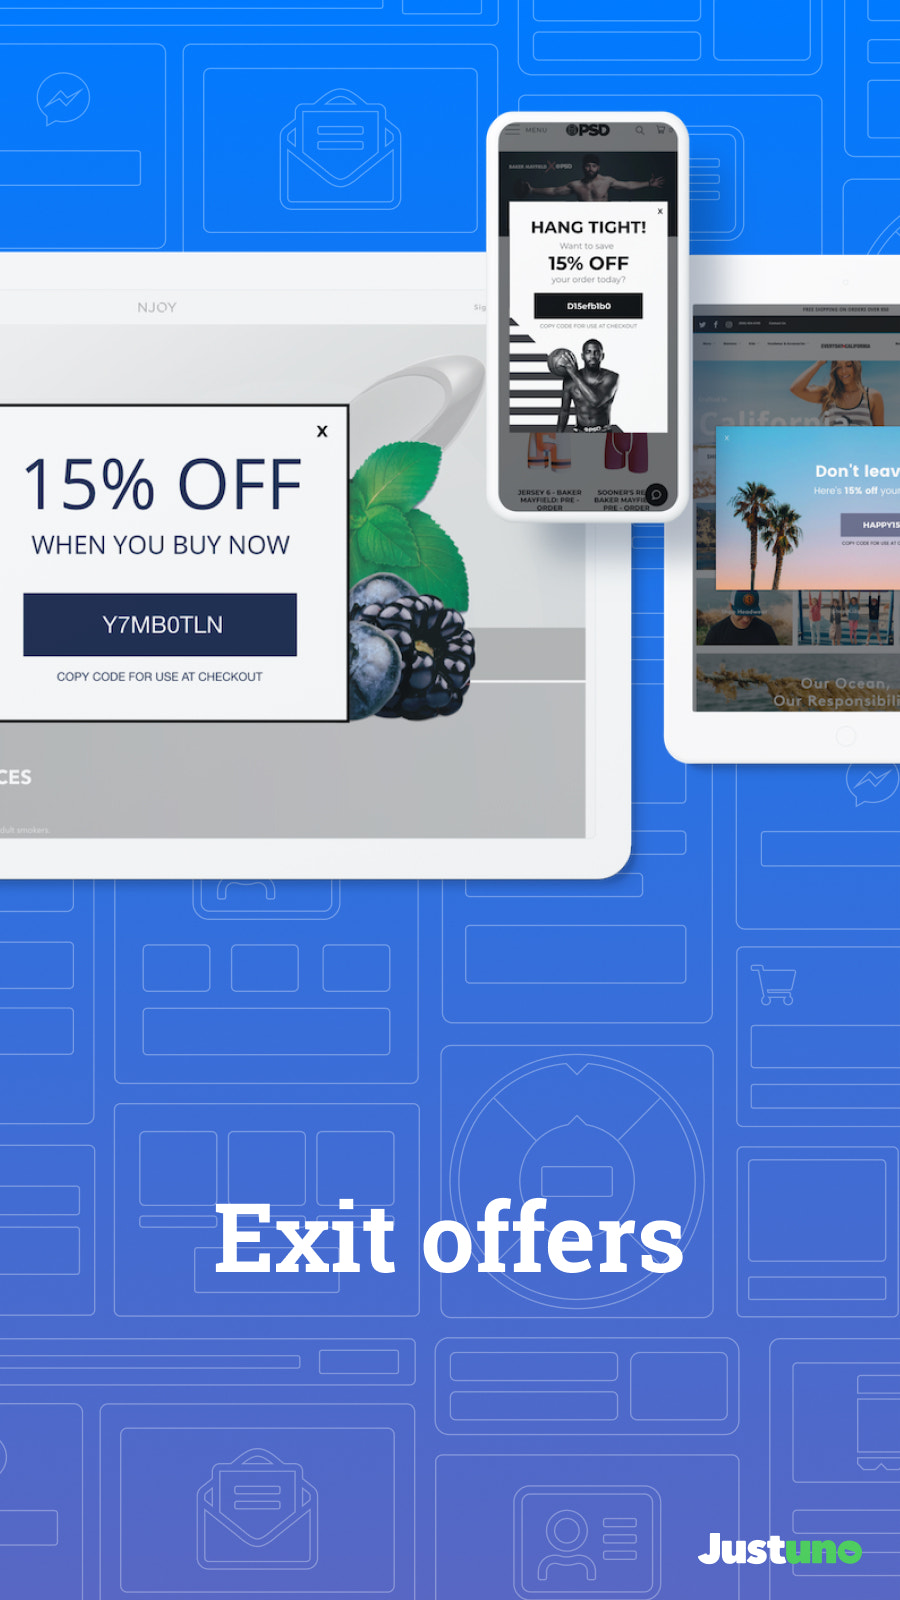 Mobile optimized exit offers and cart abandonment